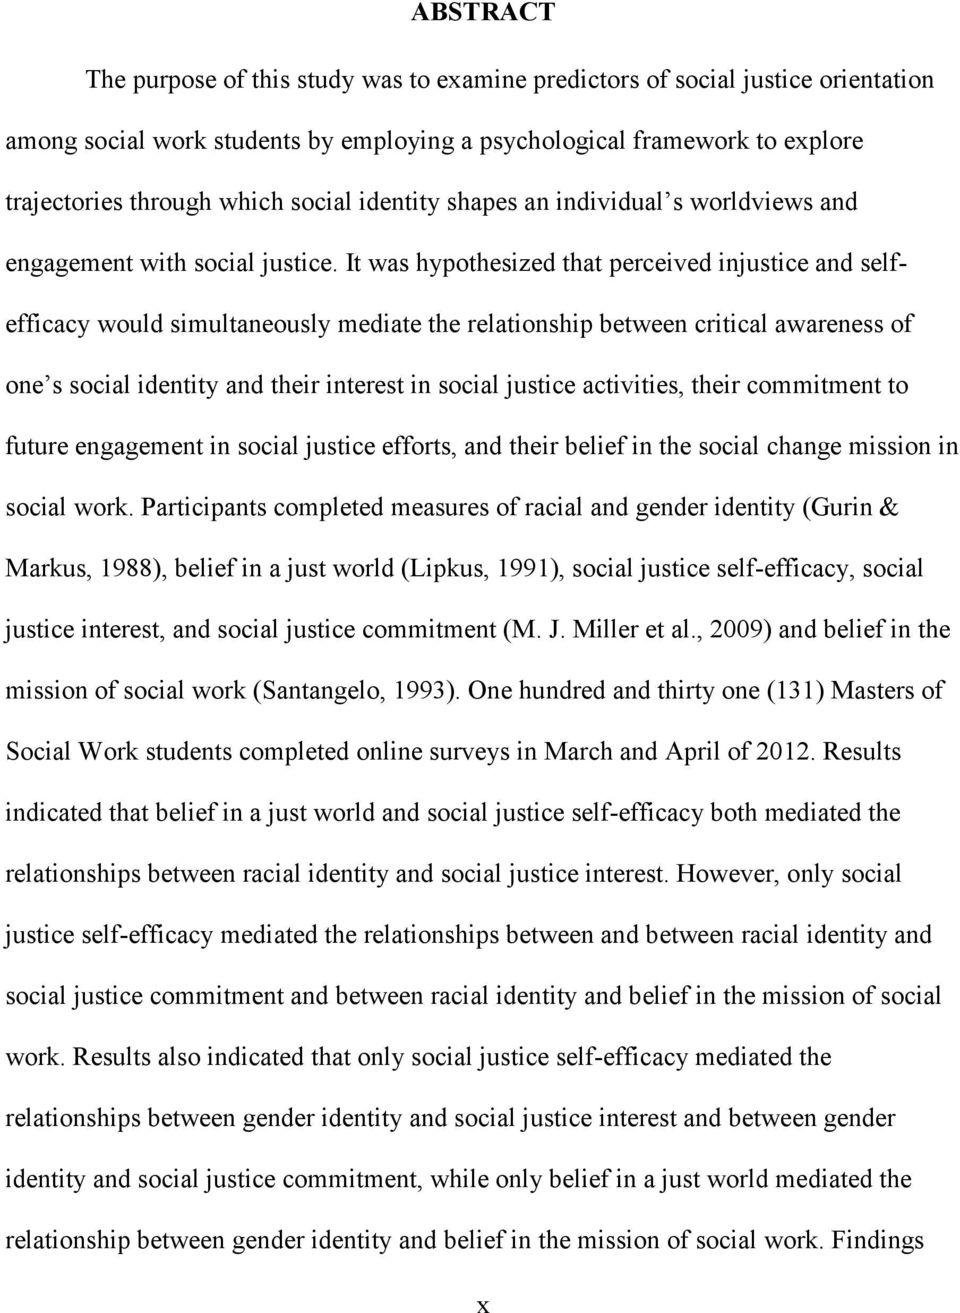 It was hypothesized that perceived injustice and selfefficacy would simultaneously mediate the relationship between critical awareness of one s social identity and their interest in social justice